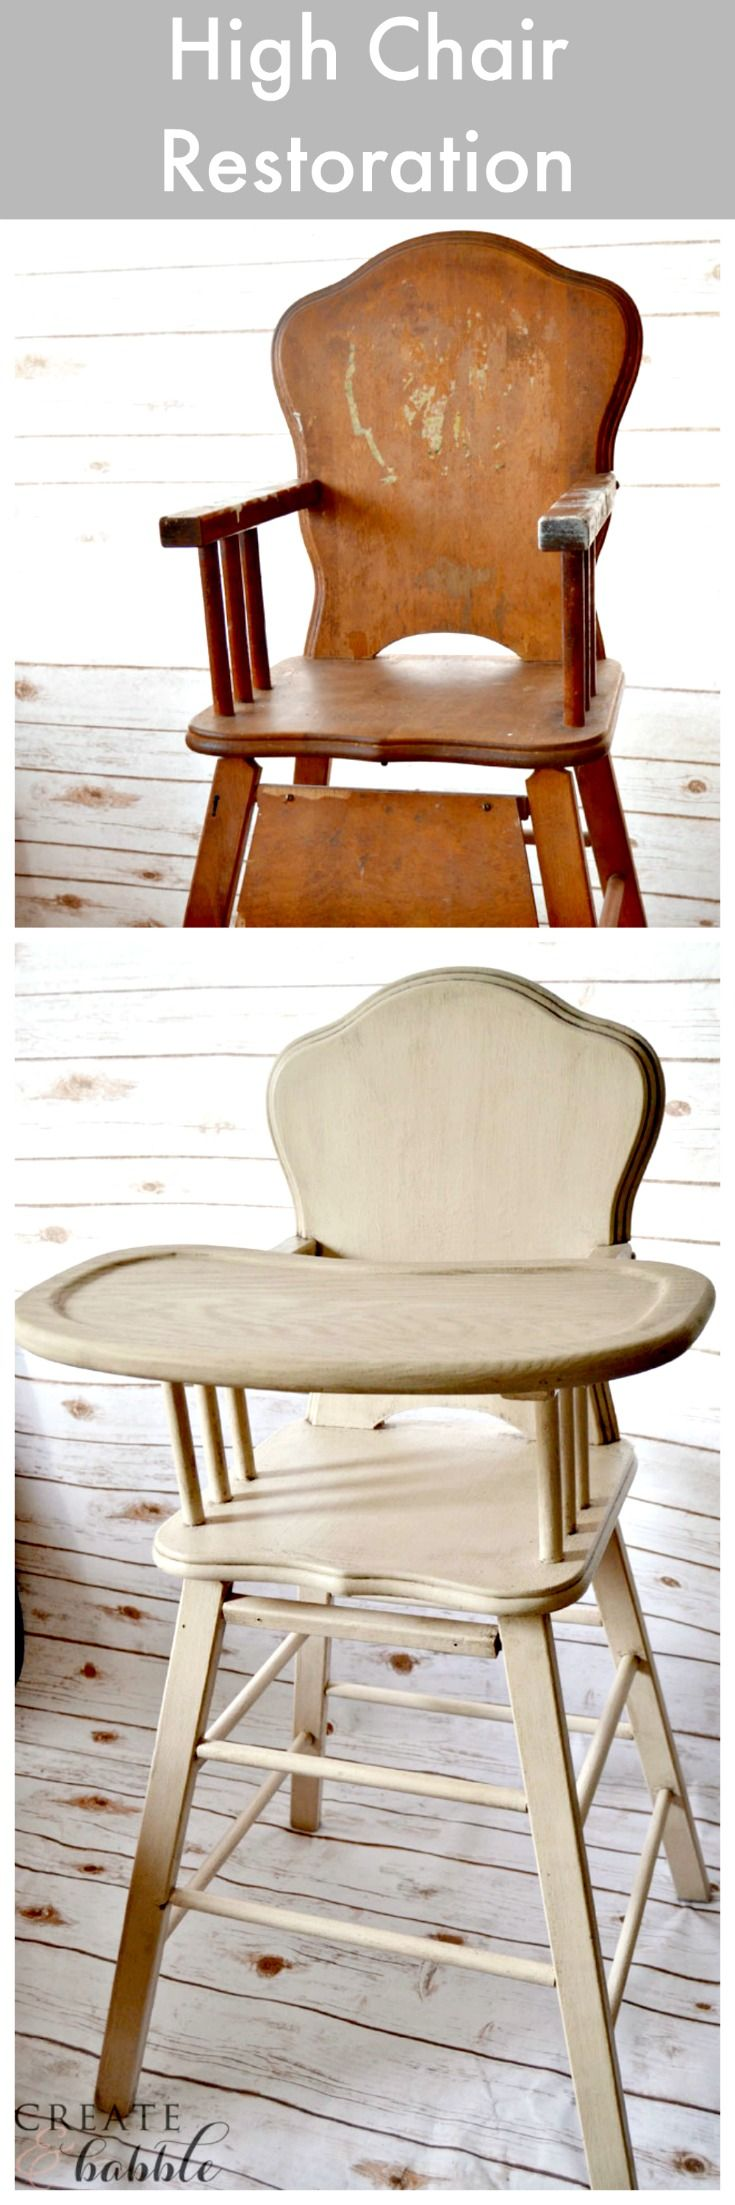 Painted wooden high chairs - I Restored My Old High Chair With Products From The Amy Howard At Home Line